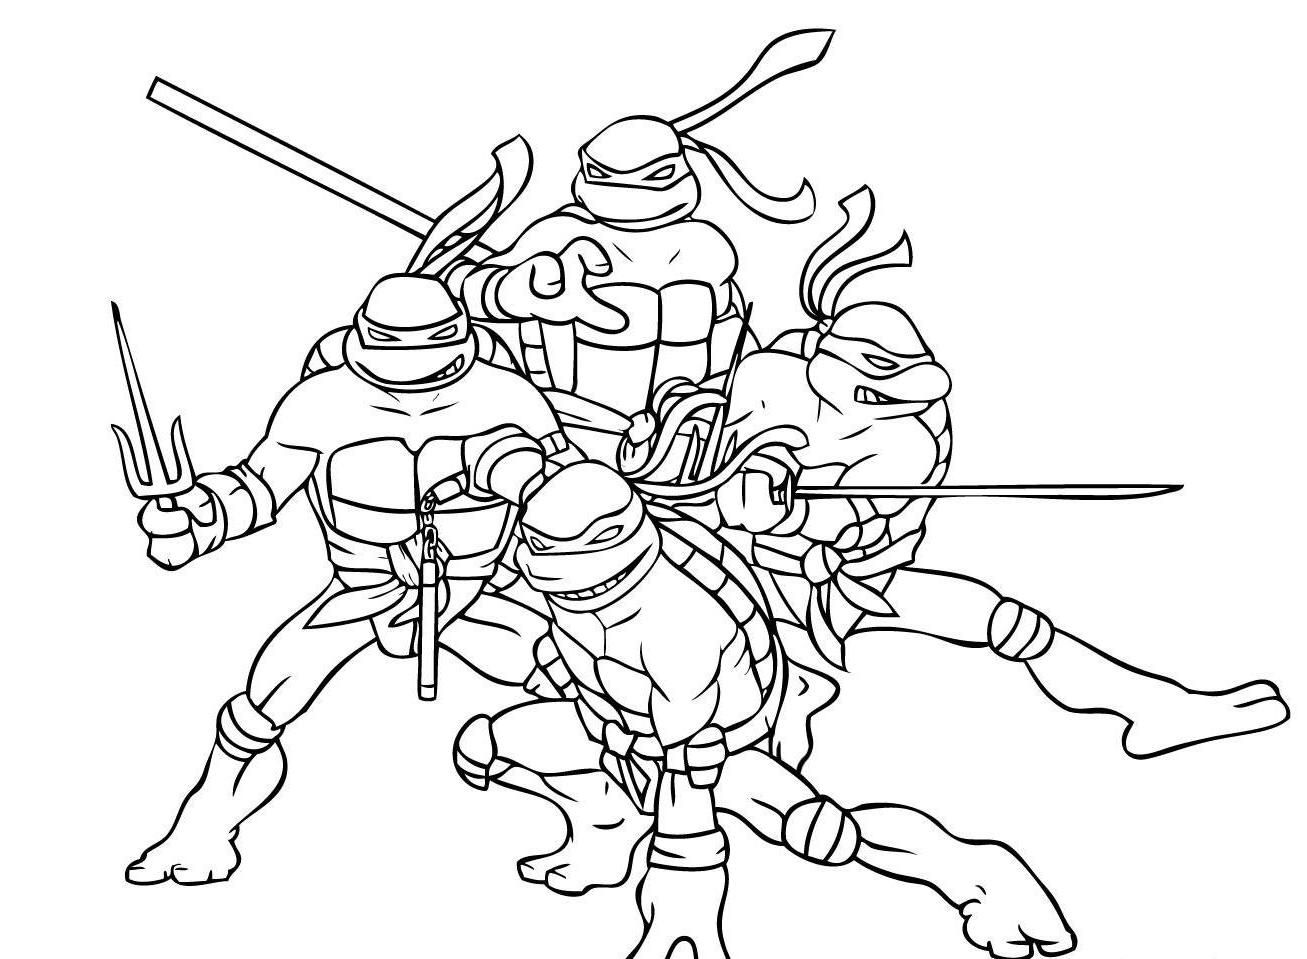 Coloring online ninja - The Ninja Turtles Coloring Pages